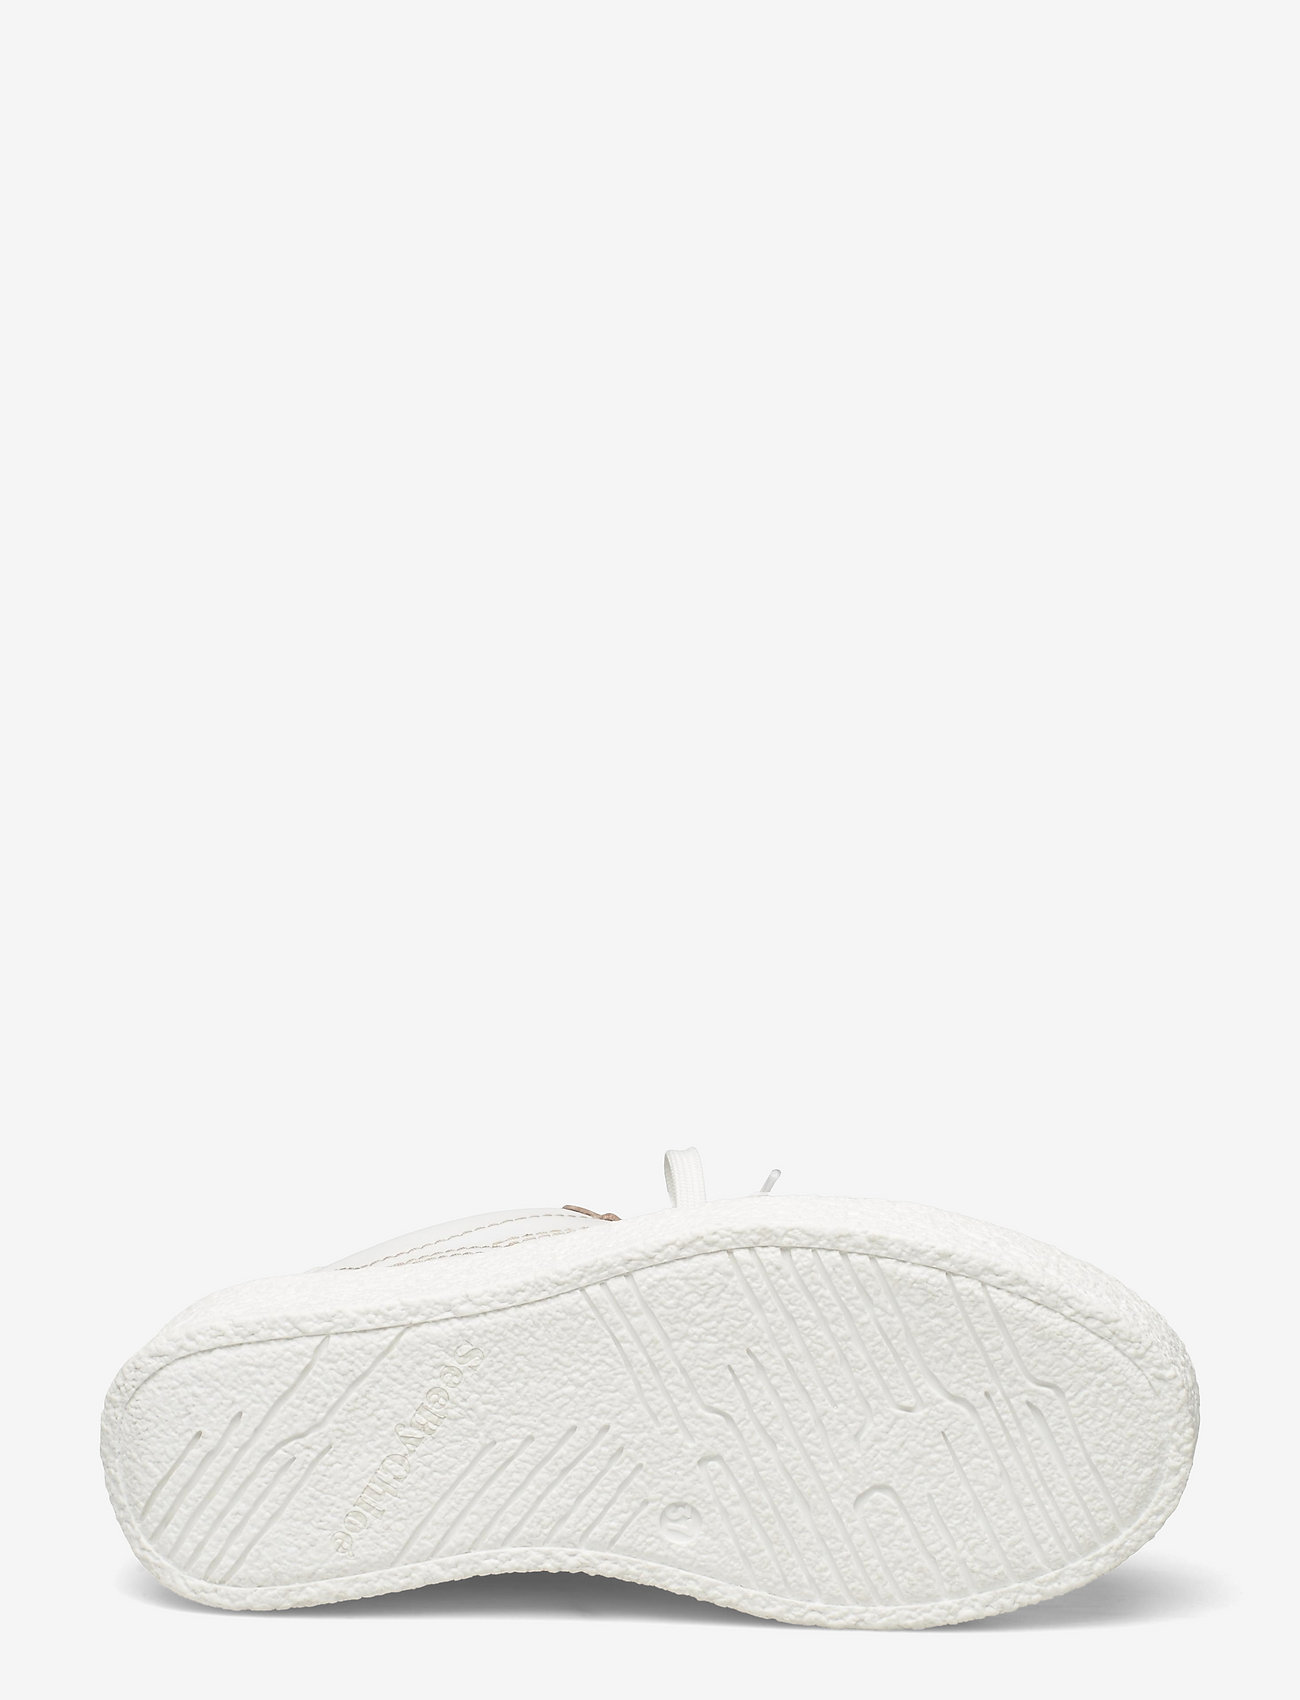 See by Chloé - LOW-TOP SNEAKERS - lage sneakers - white - nude - 4